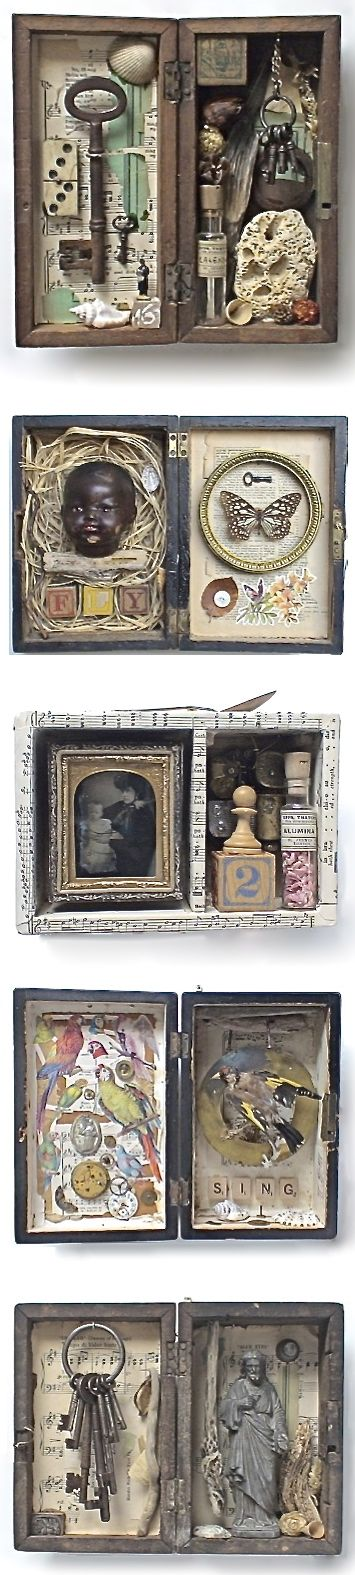 Art de l'assemblage par Mike Bennion.